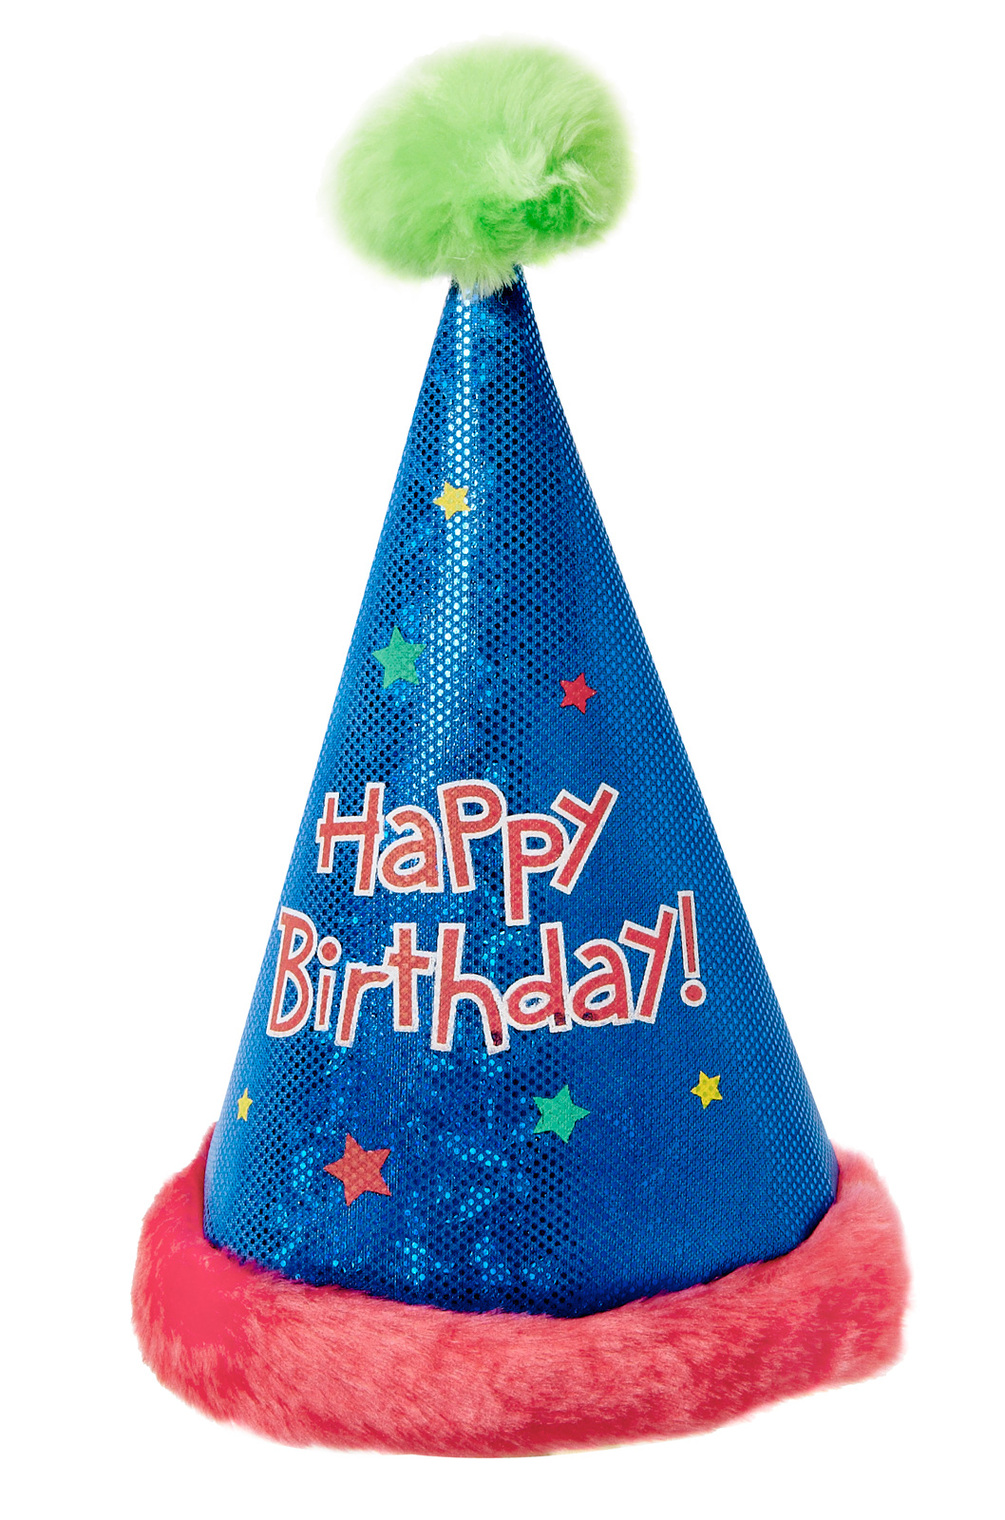 1005x1520 Birthday Hat Images Clipart Free To Use Clip Art Resource 2